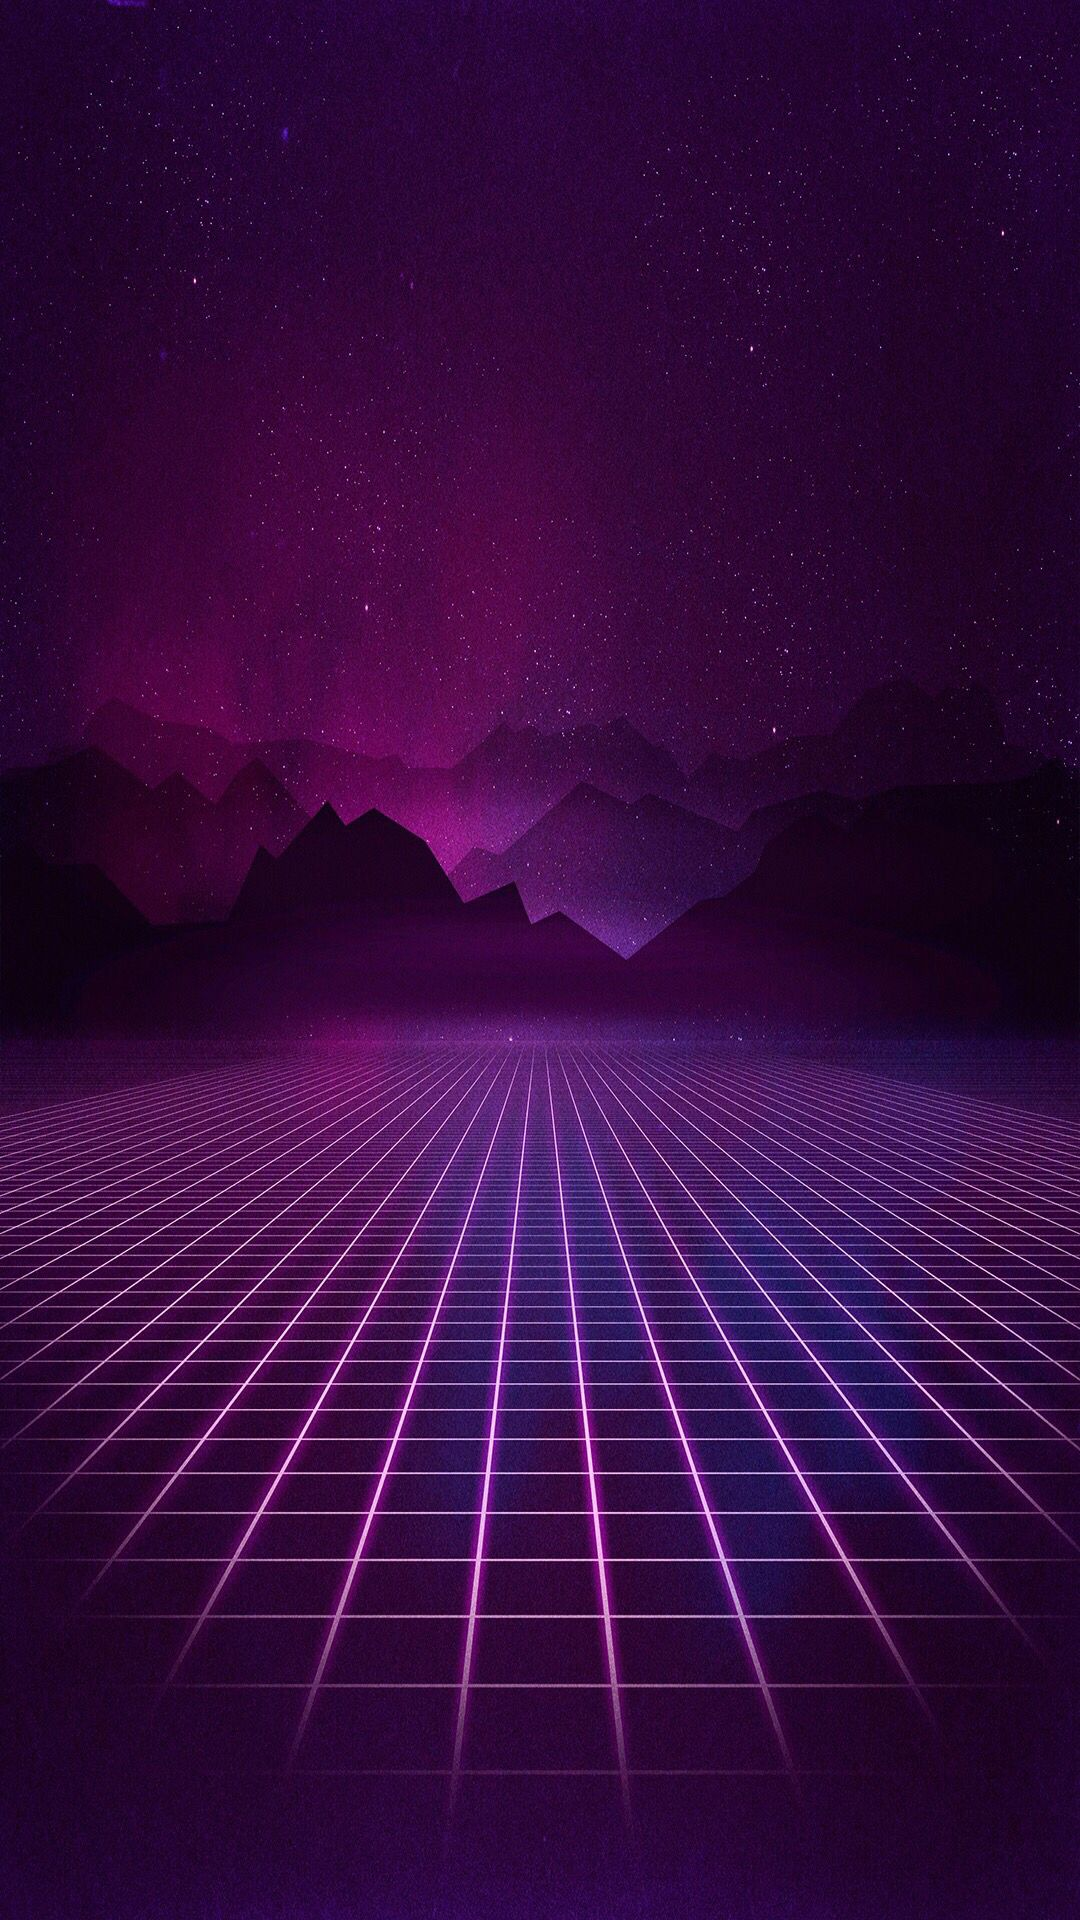 The way to purple mountains ^_^ Vaporwave wallpaper